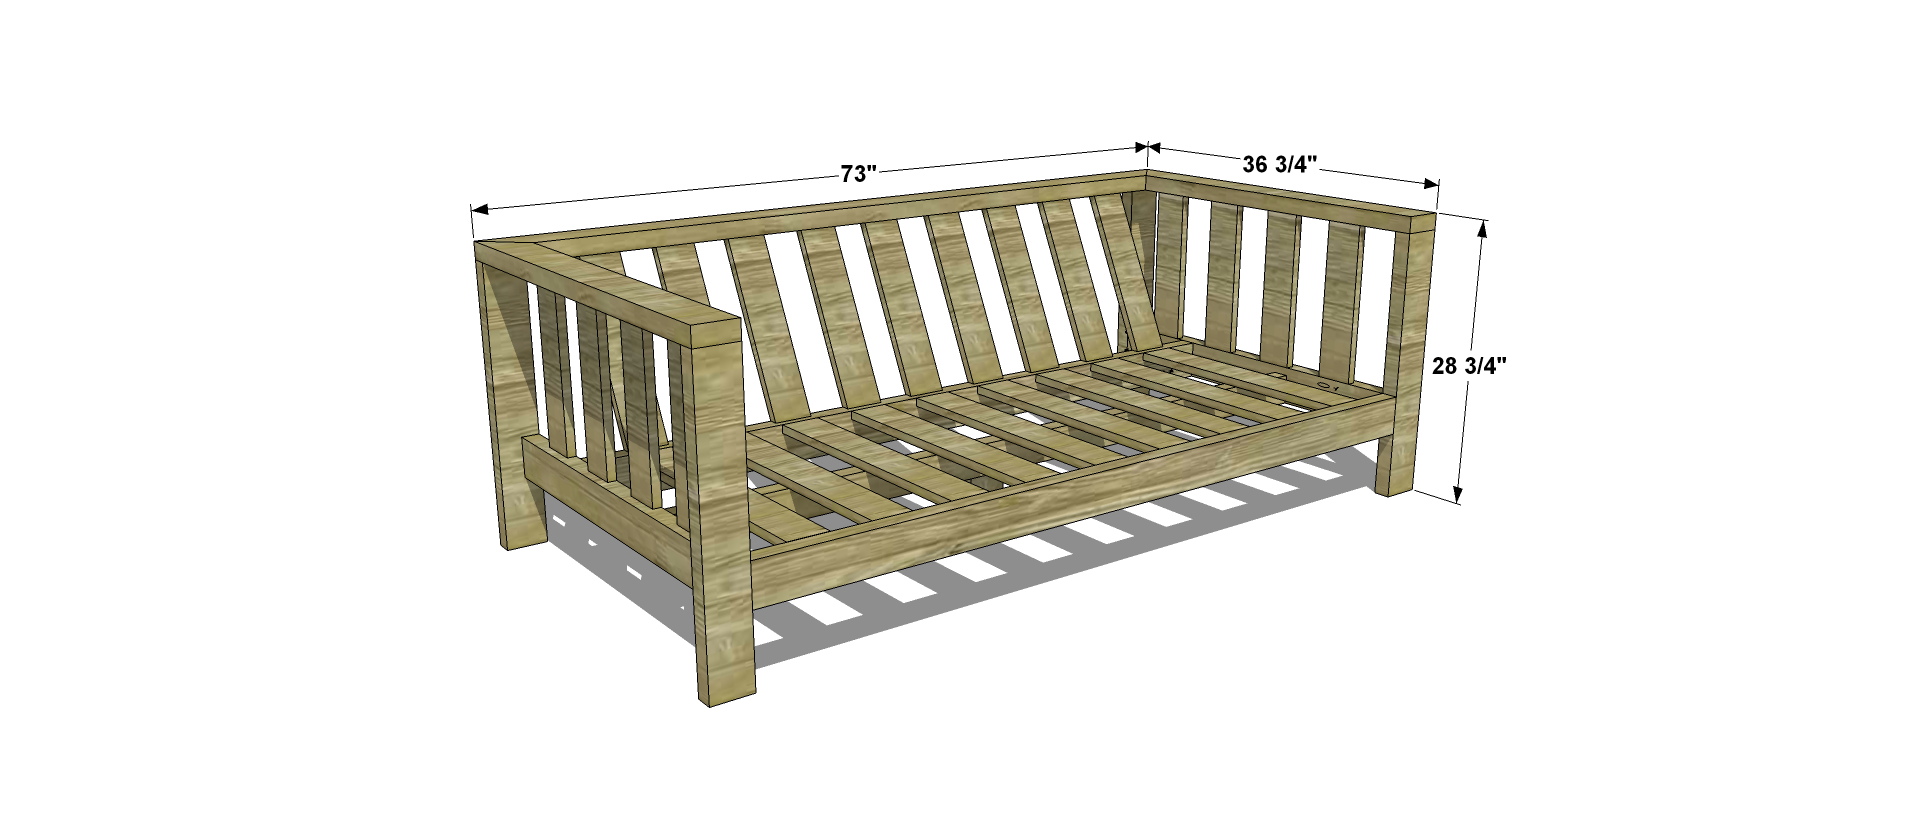 Diy outdoor sofa - Dimensions For Free Diy Furniture Plans How To Build An Outdoor Reef Sofa With